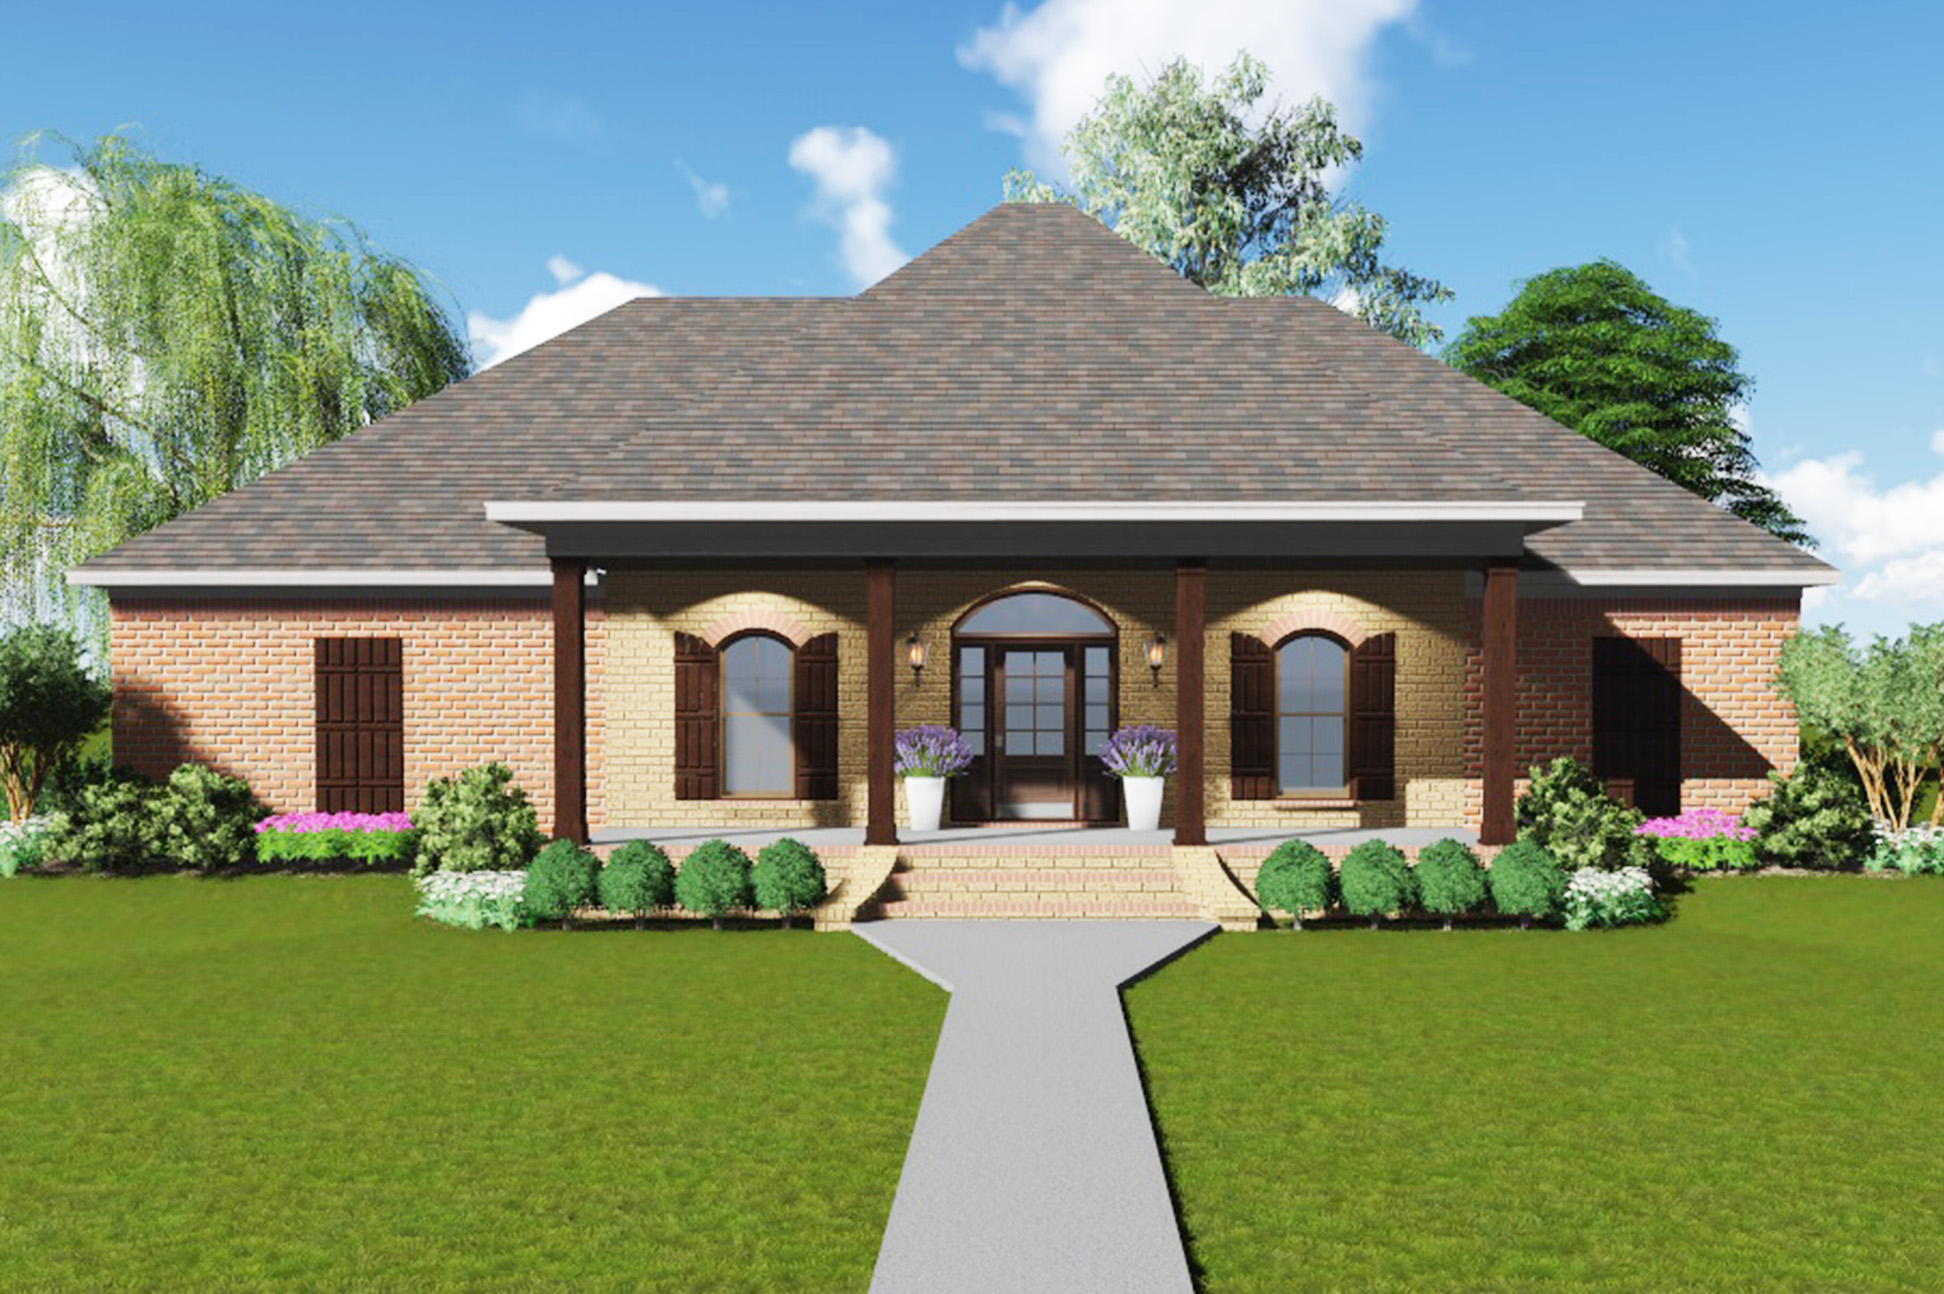 Architectural designs for Acadian house plans with front porch